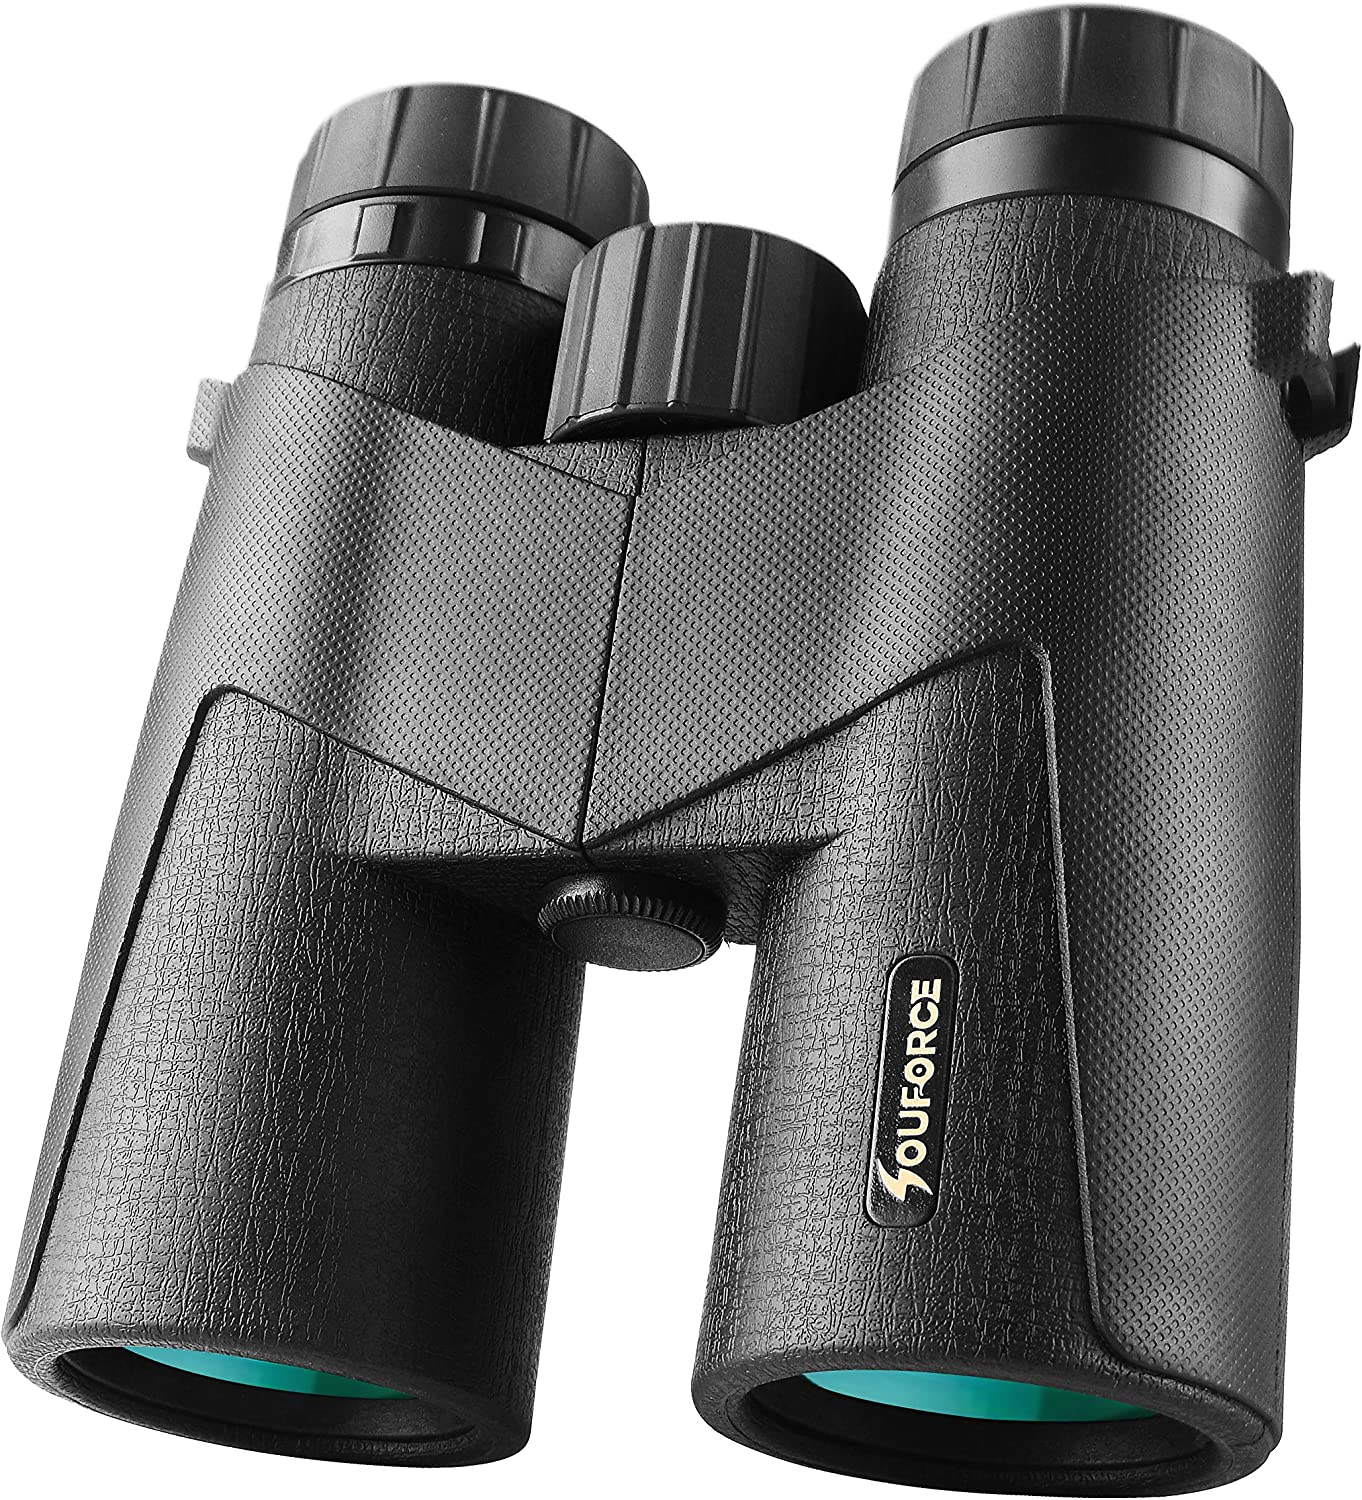 SOUFORCE 10×42 Binoculars for Adults Kids,Black Waterproof Fogproof Shockproof with BAK4 Prism FMC Lens for Bird Watching Travel Stargazing Hunting Concerts Sports Games